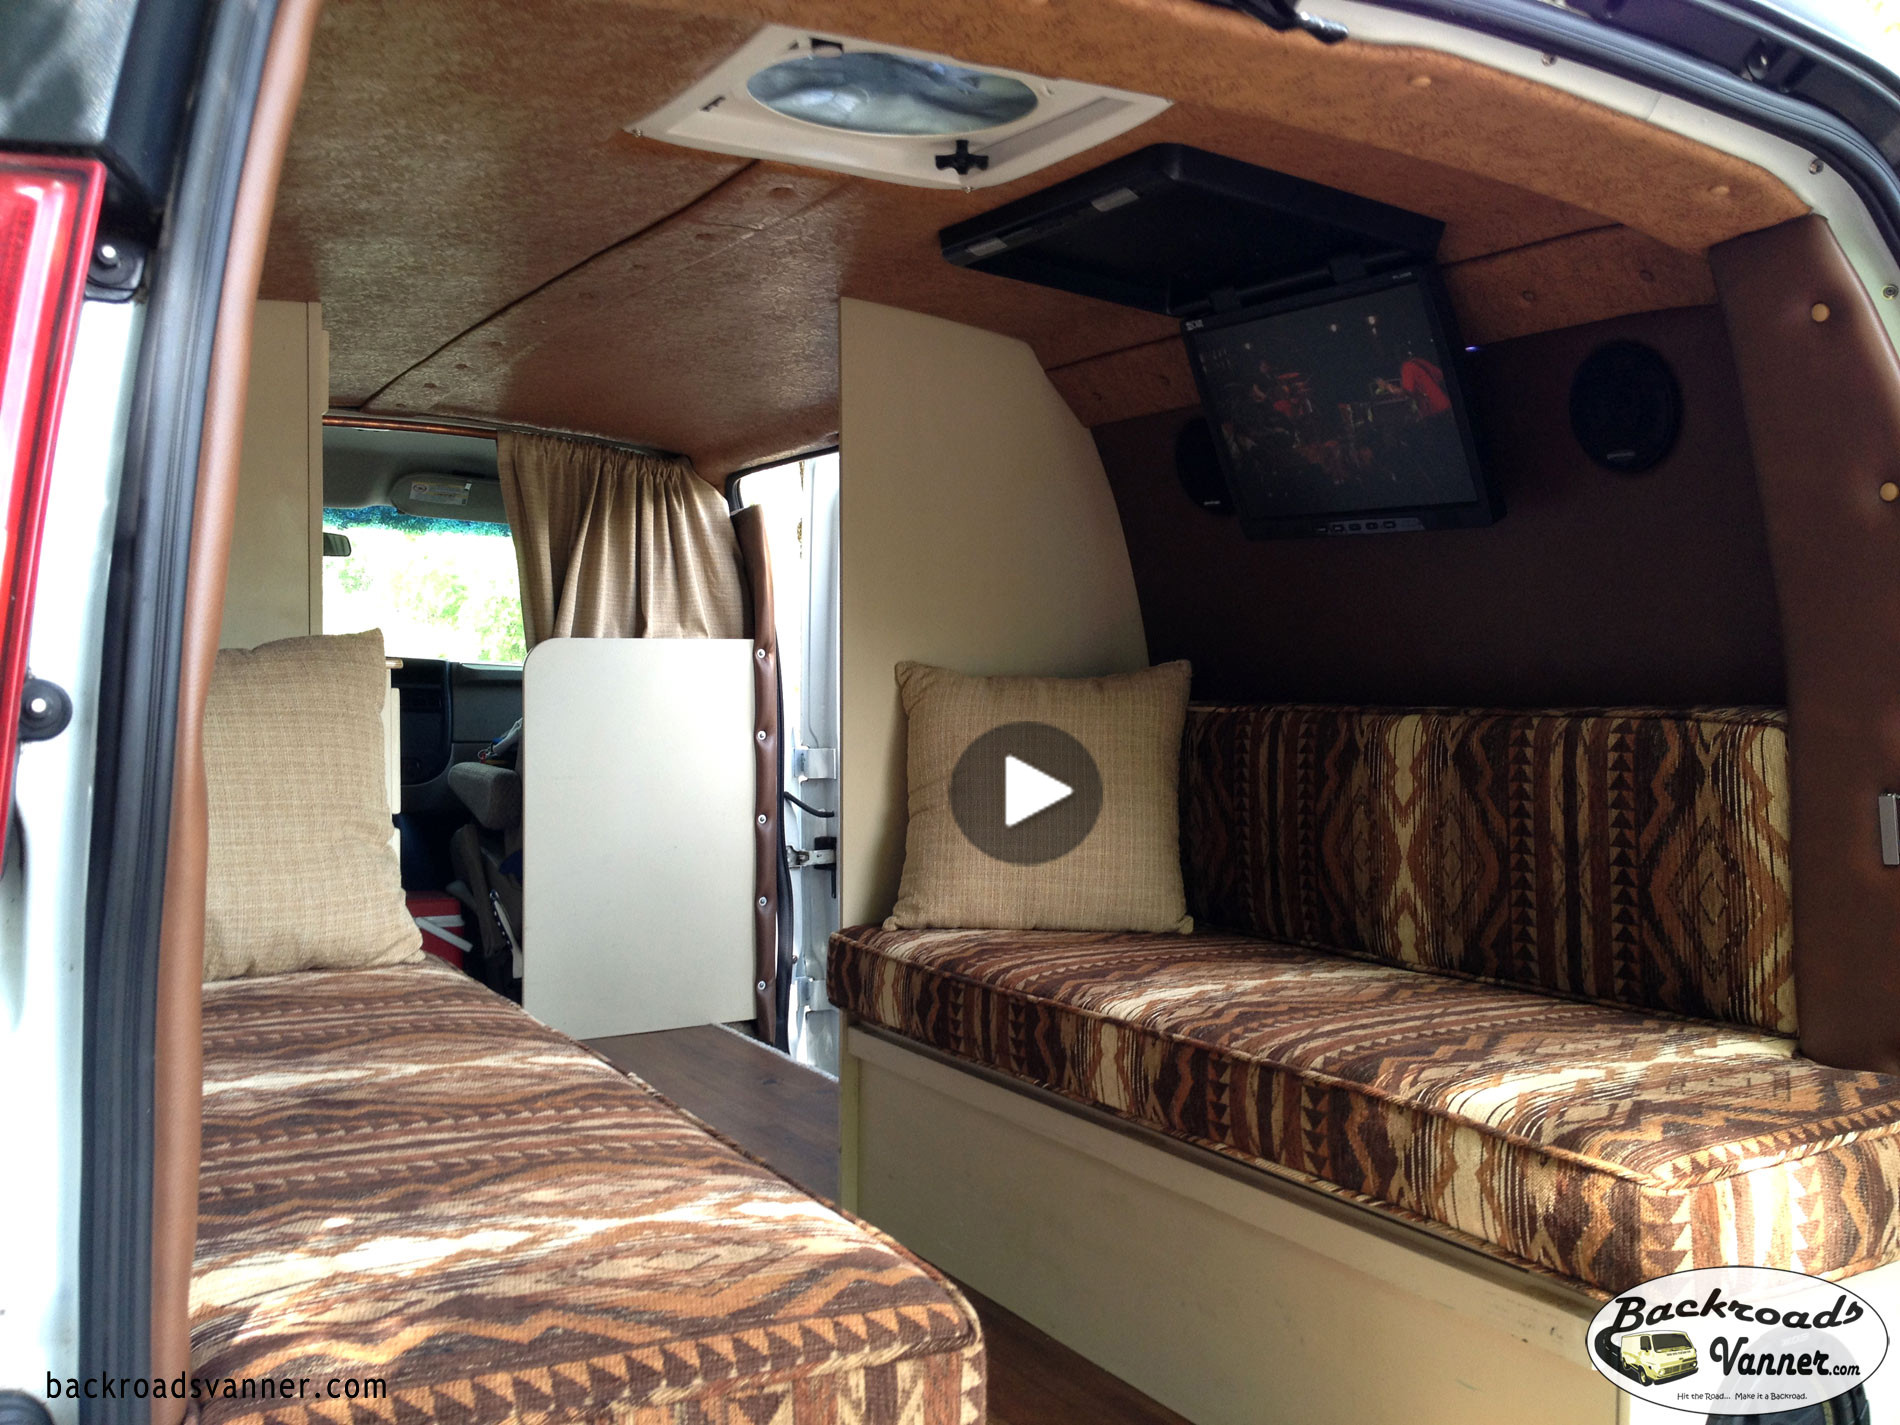 Best ideas about DIY Van Camper . Save or Pin Video DIY Custom Camper Van Insulation and Upholstery Now.